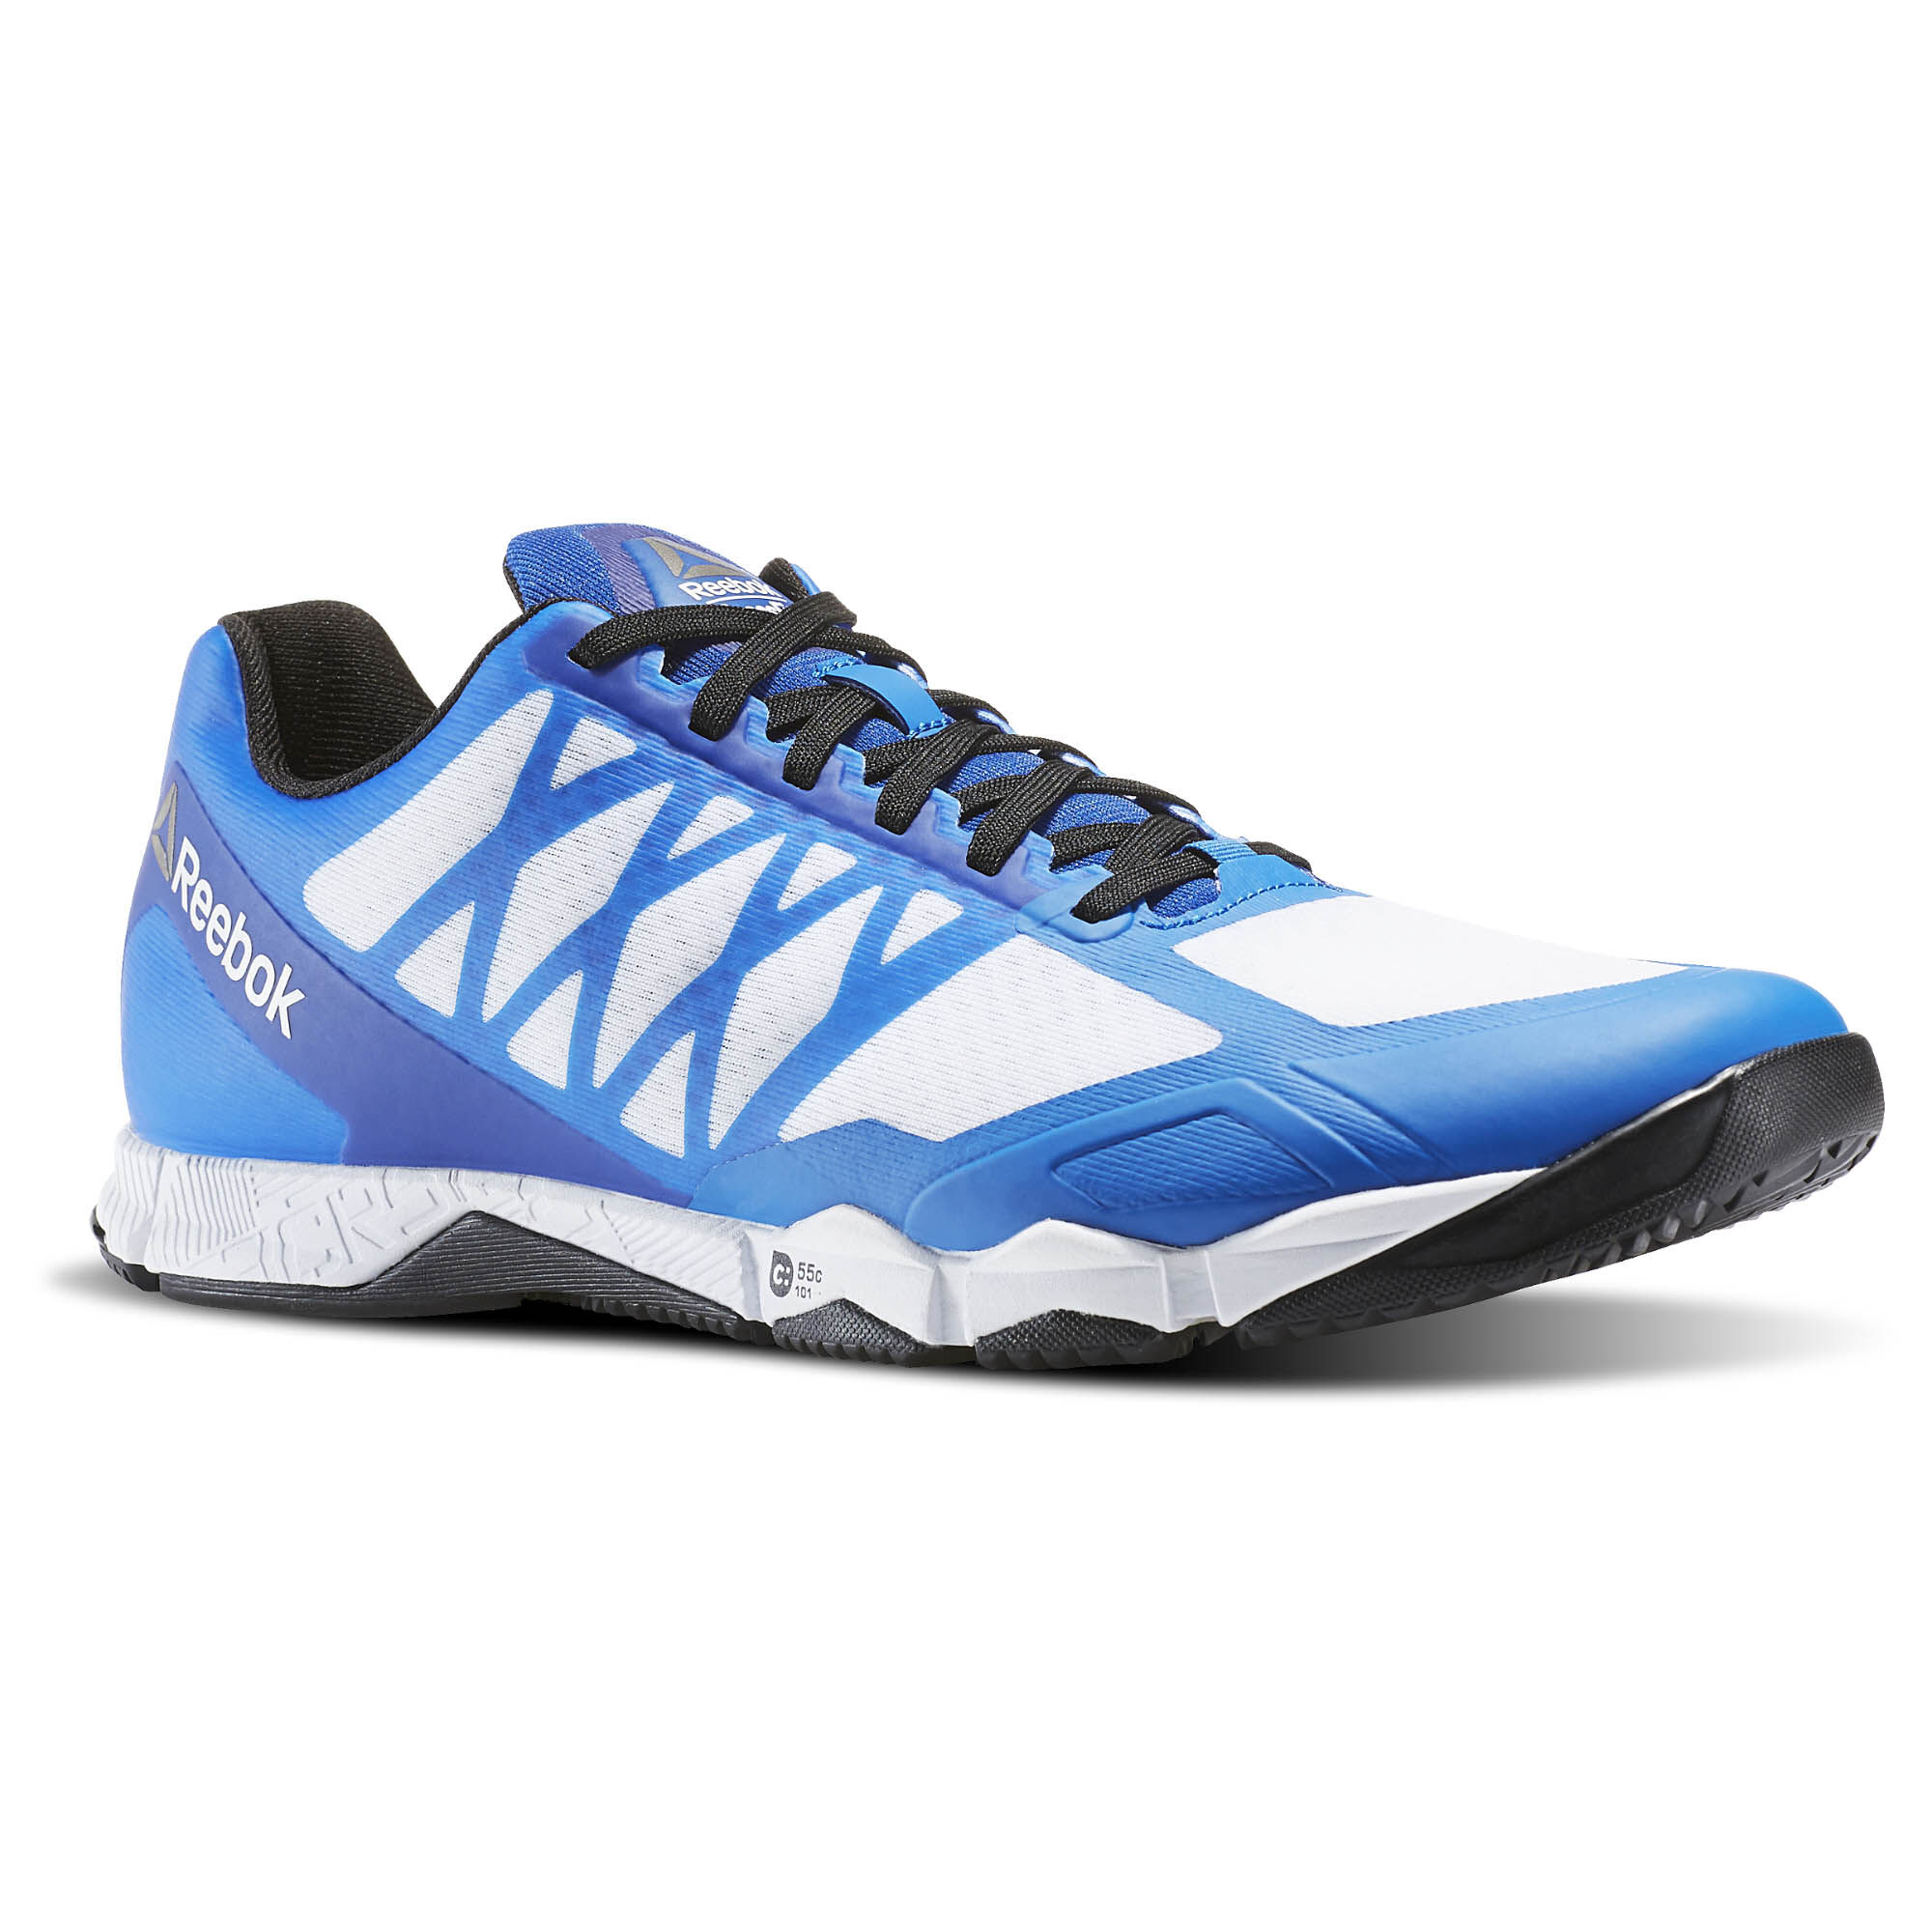 c6720a1dbe0 mens reebok crossfit shoes cheap   OFF47% The Largest Catalog Discounts